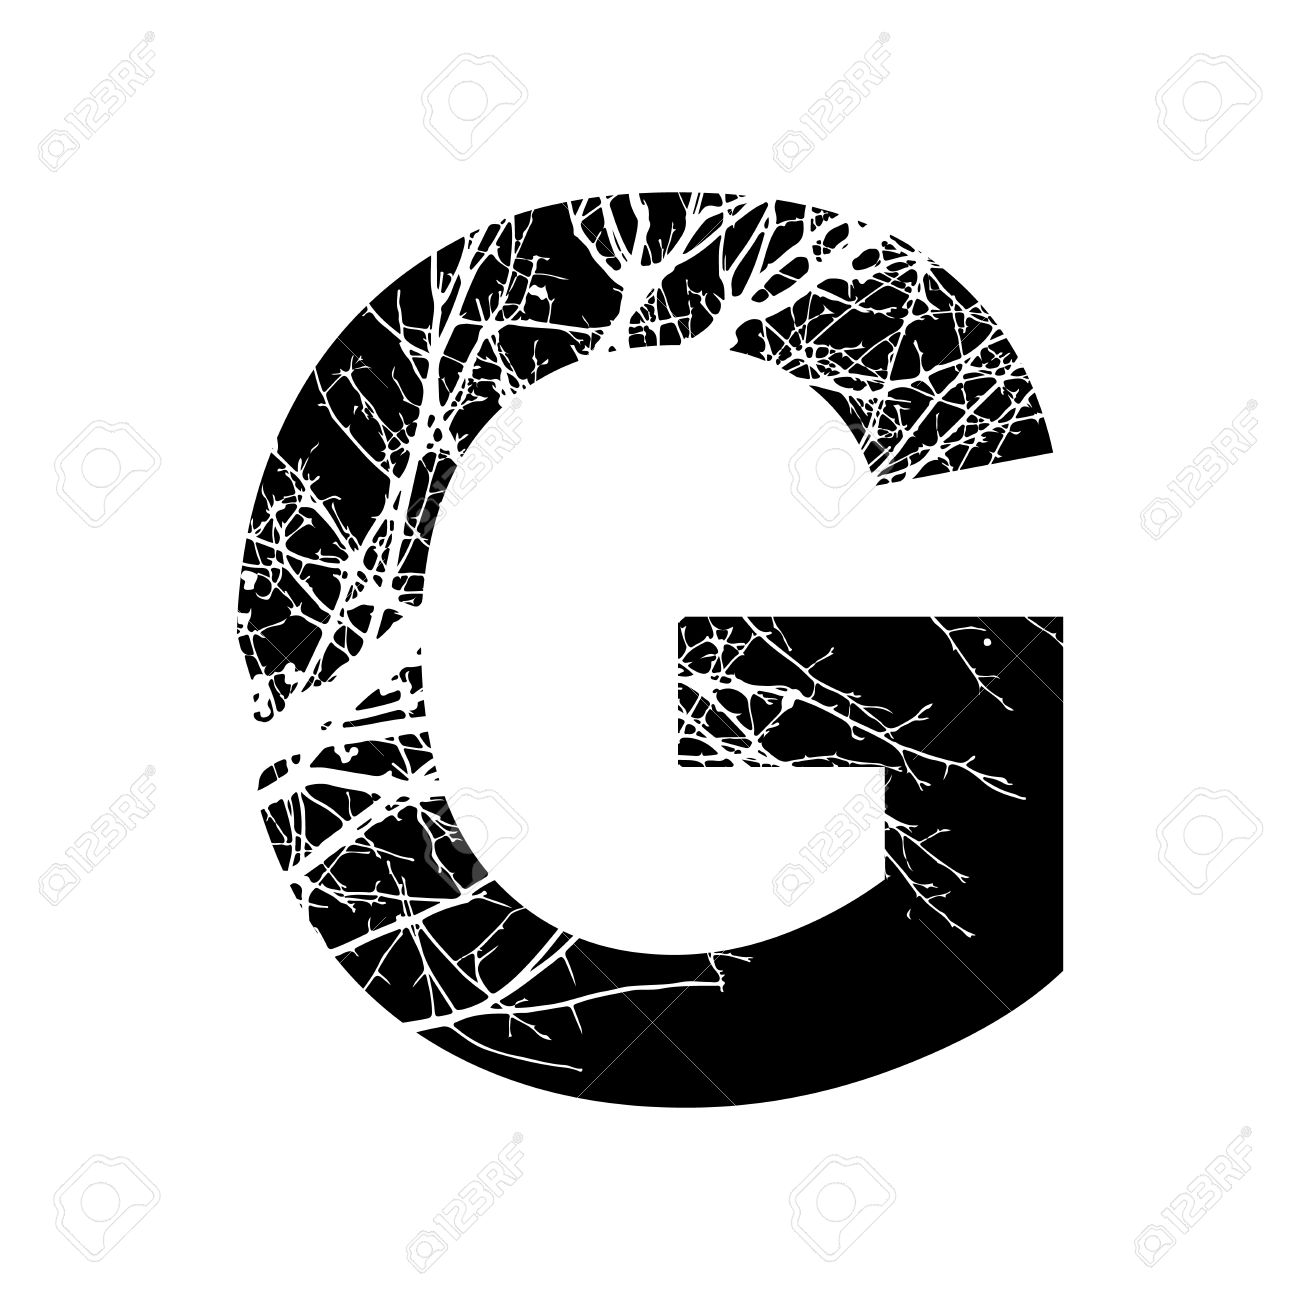 Letter G Double Exposure With White Tree On Black Background Vector